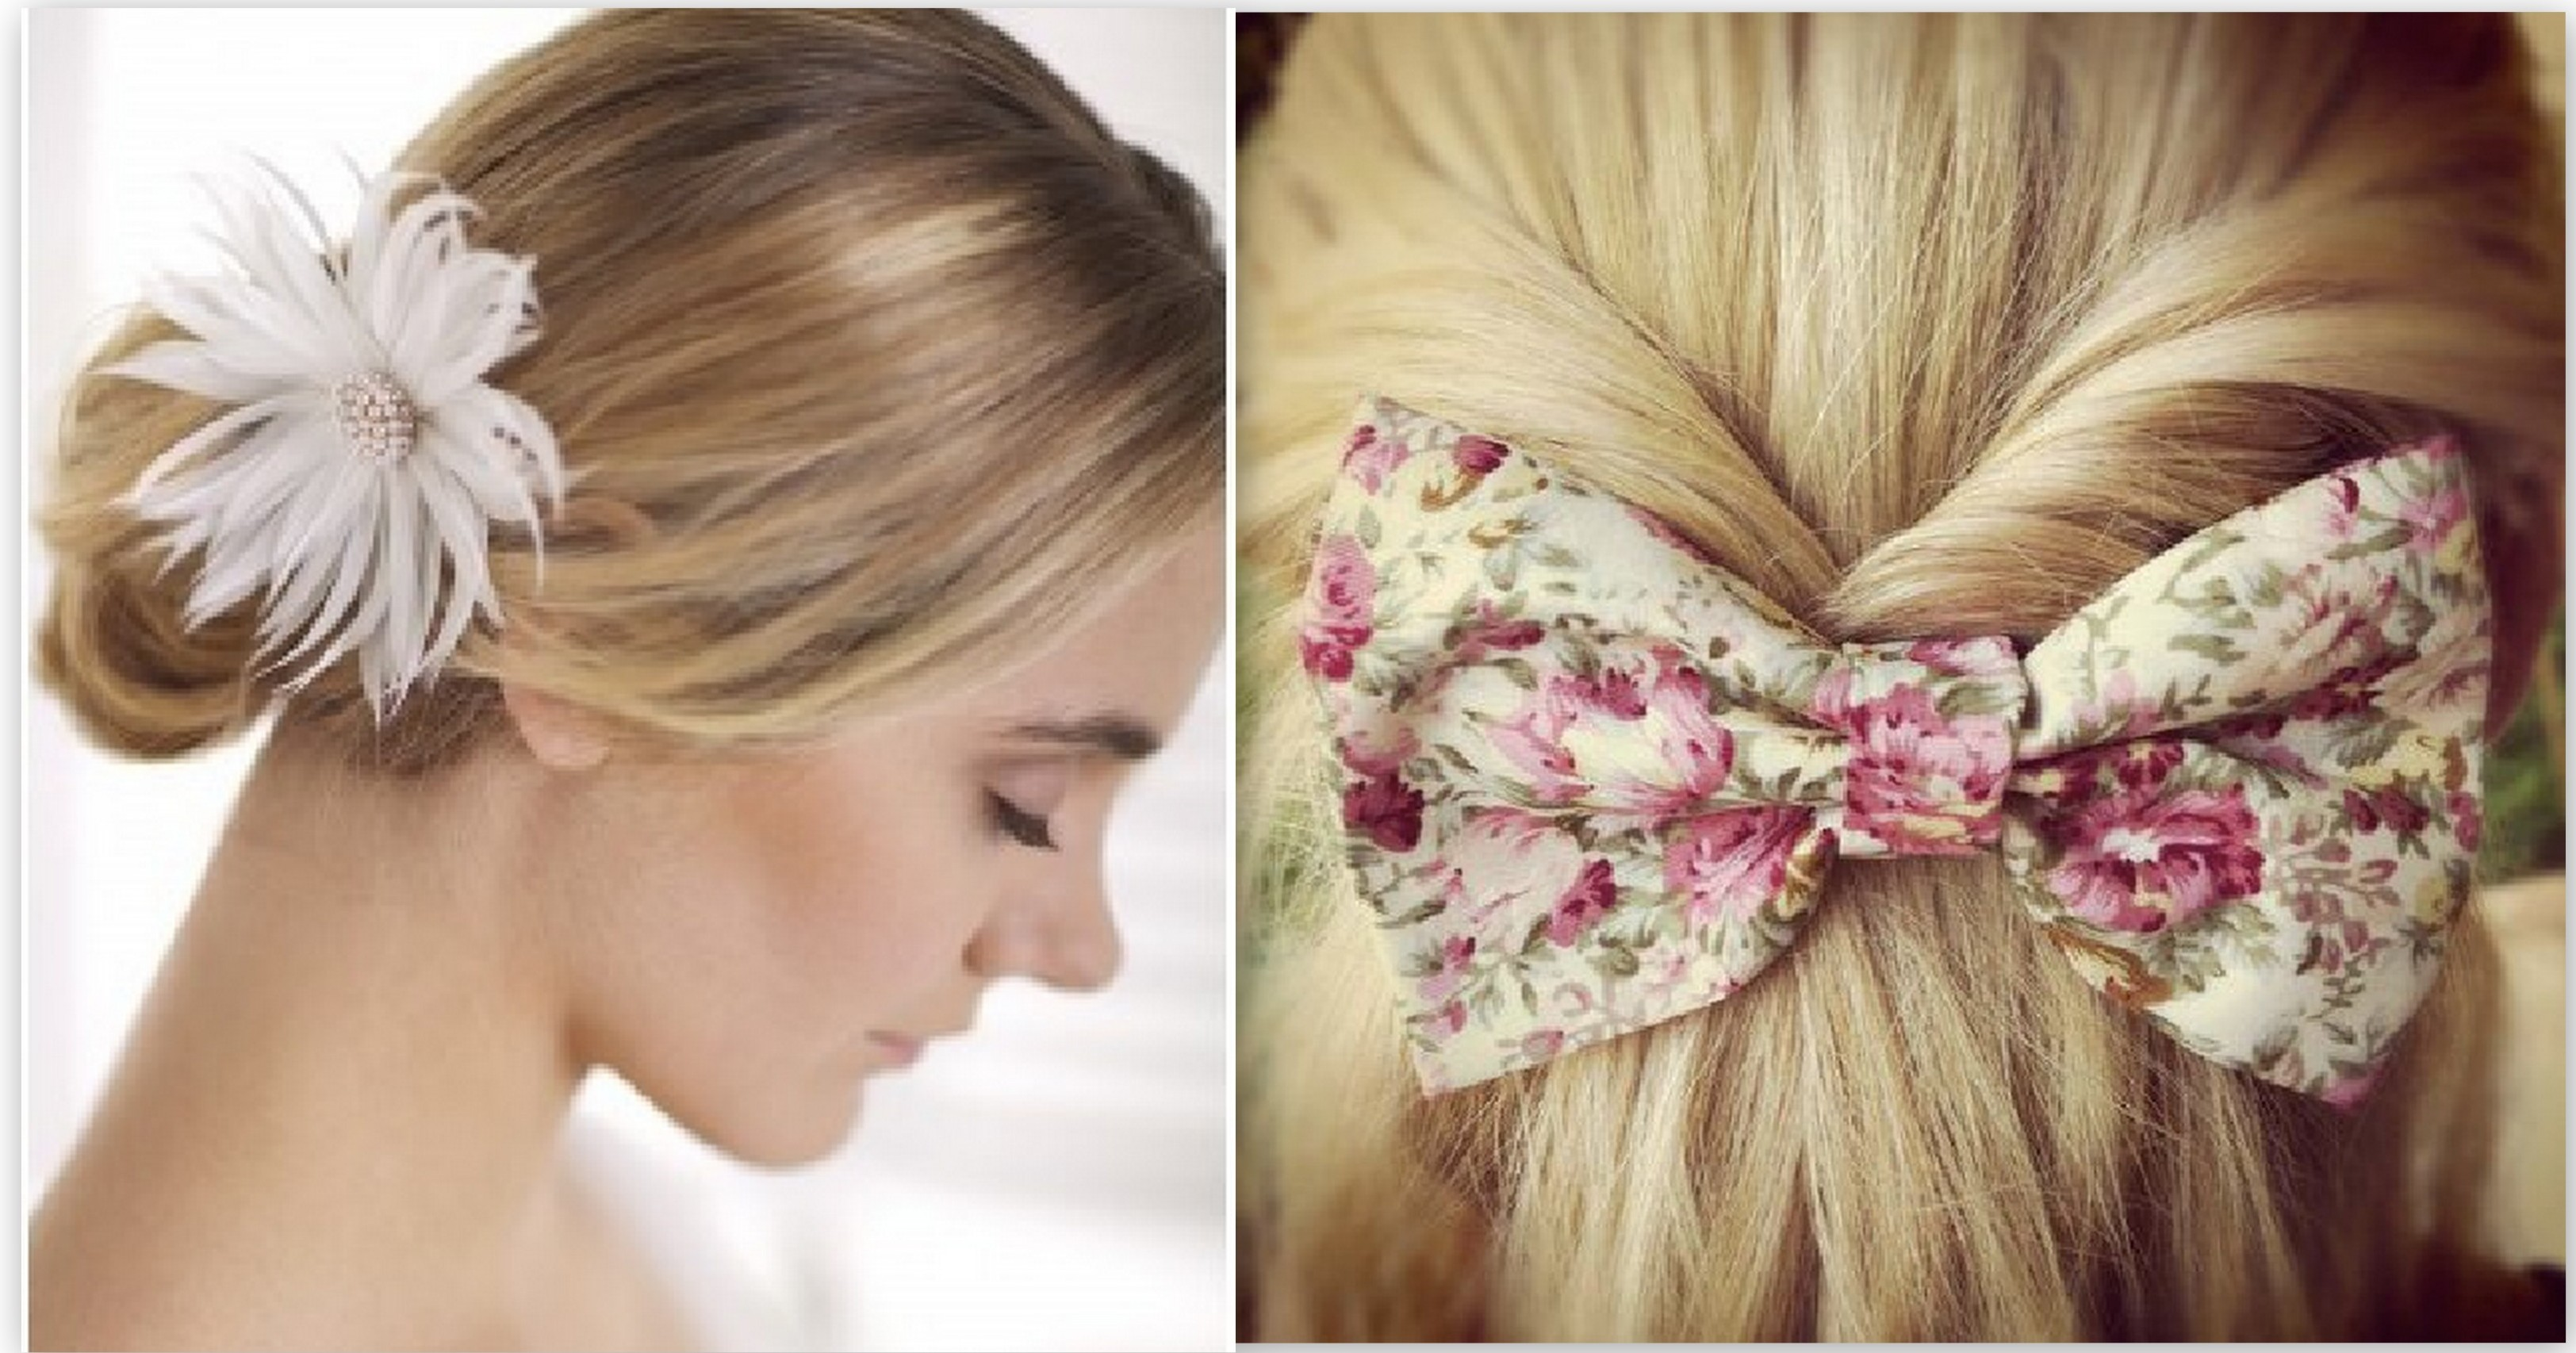 8 Hair Accessories Styling Tips From Bedhead To Top Knot Bun